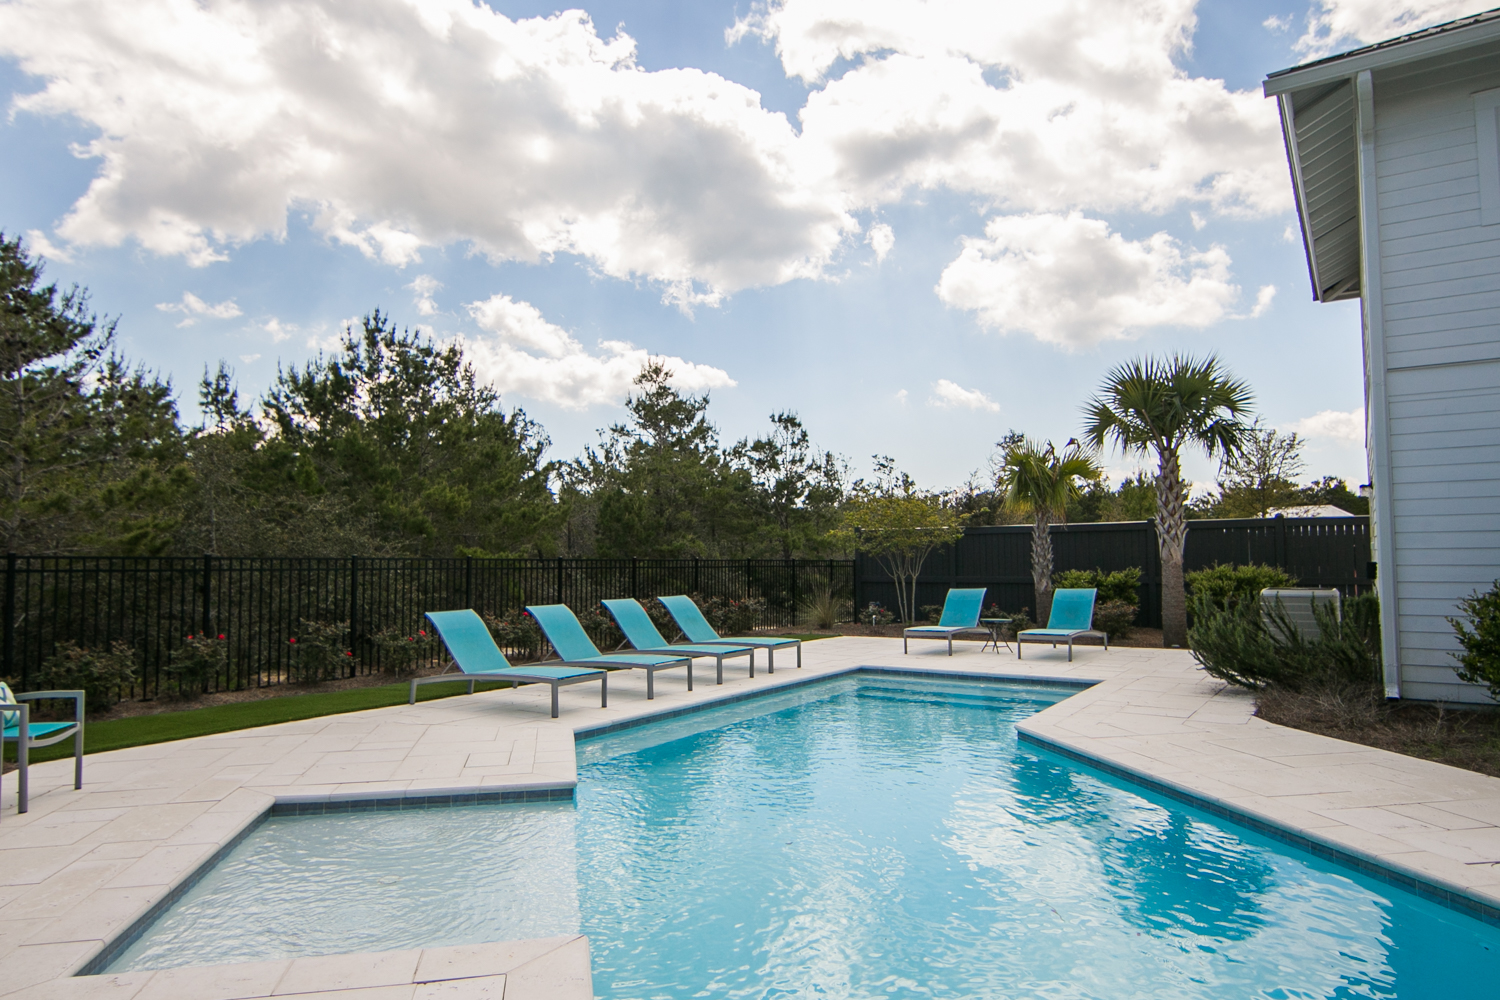 Large Private Pool with plenty of space